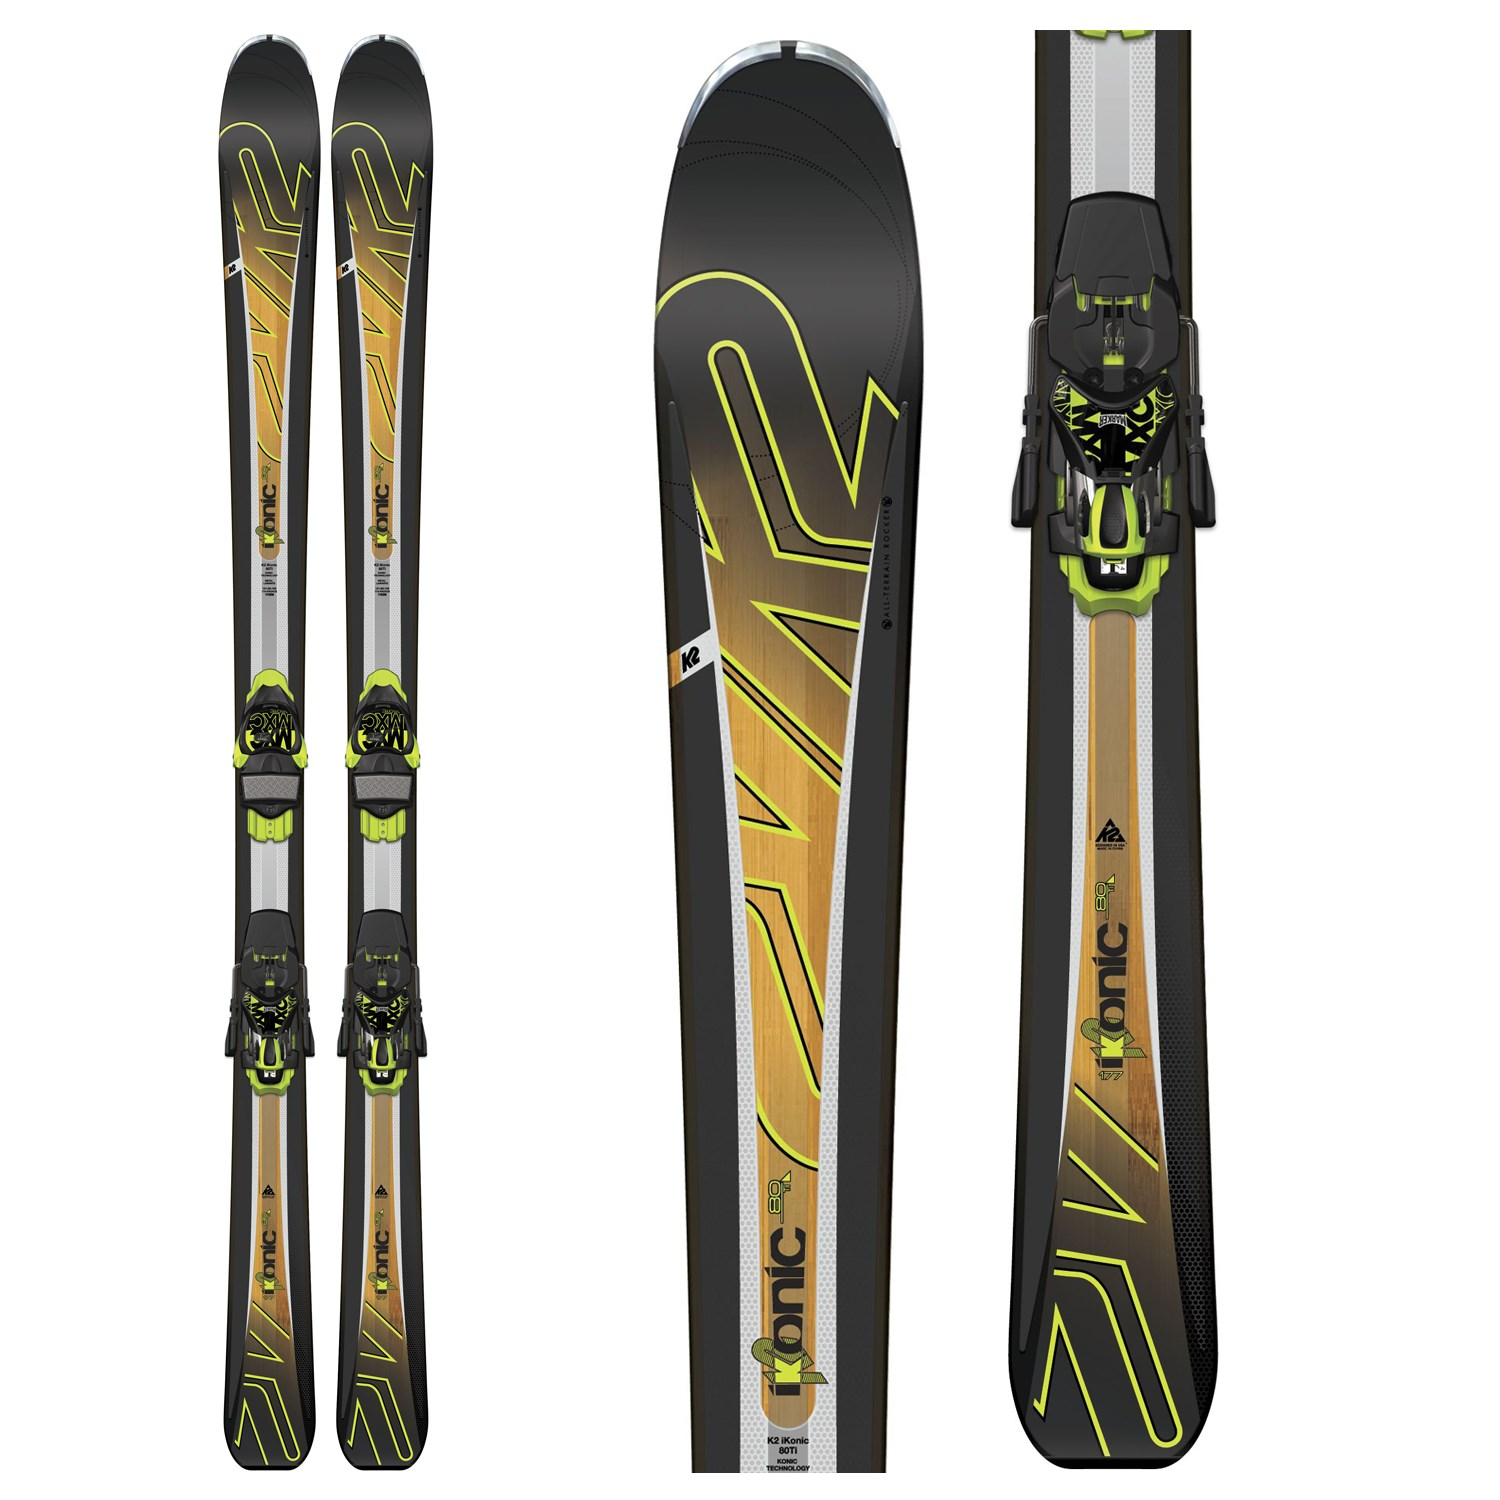 K2 IKonic 80 Ti Skis + MXC 12 Bindings + Salomon X Pro 100